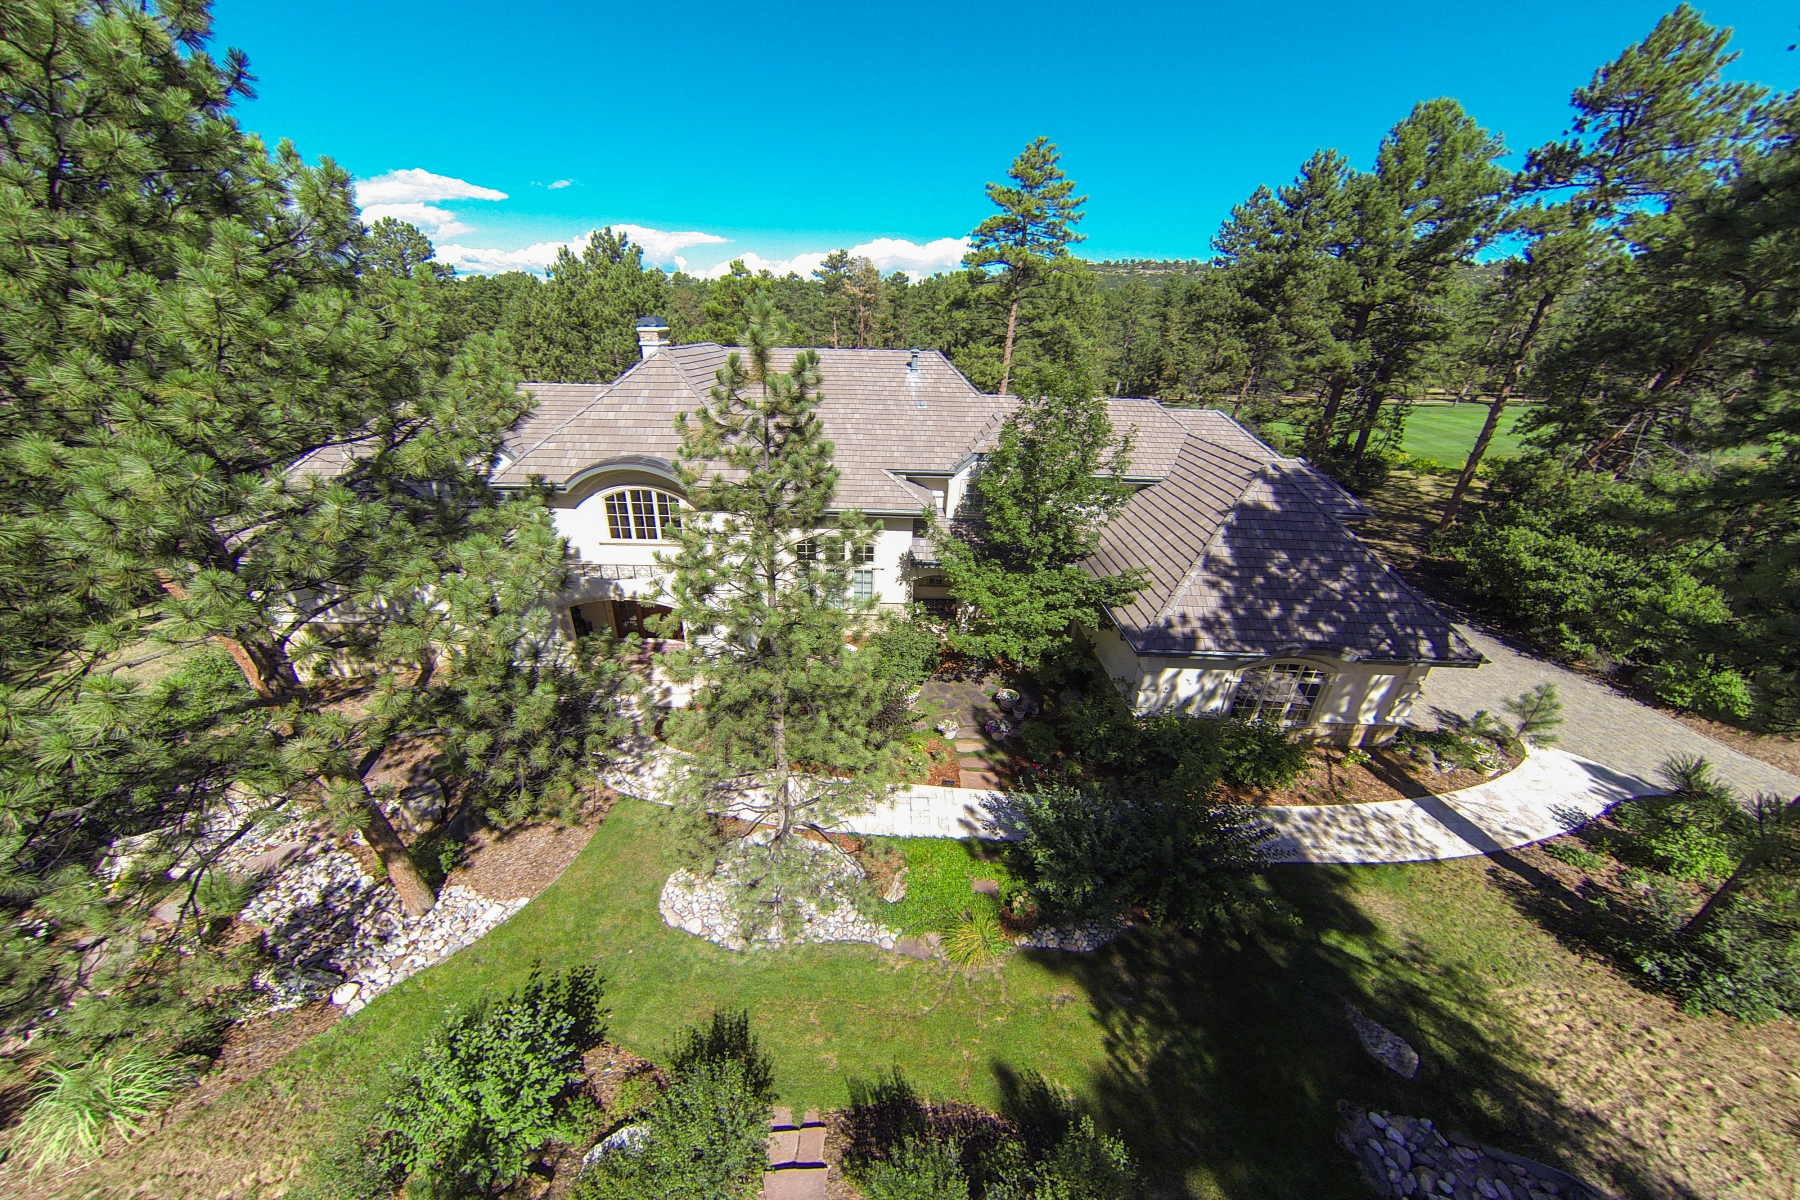 Maison unifamiliale pour l Vente à 323 Paragon Way Castle Pines Village, Castle Rock, Colorado, 80108 États-Unis